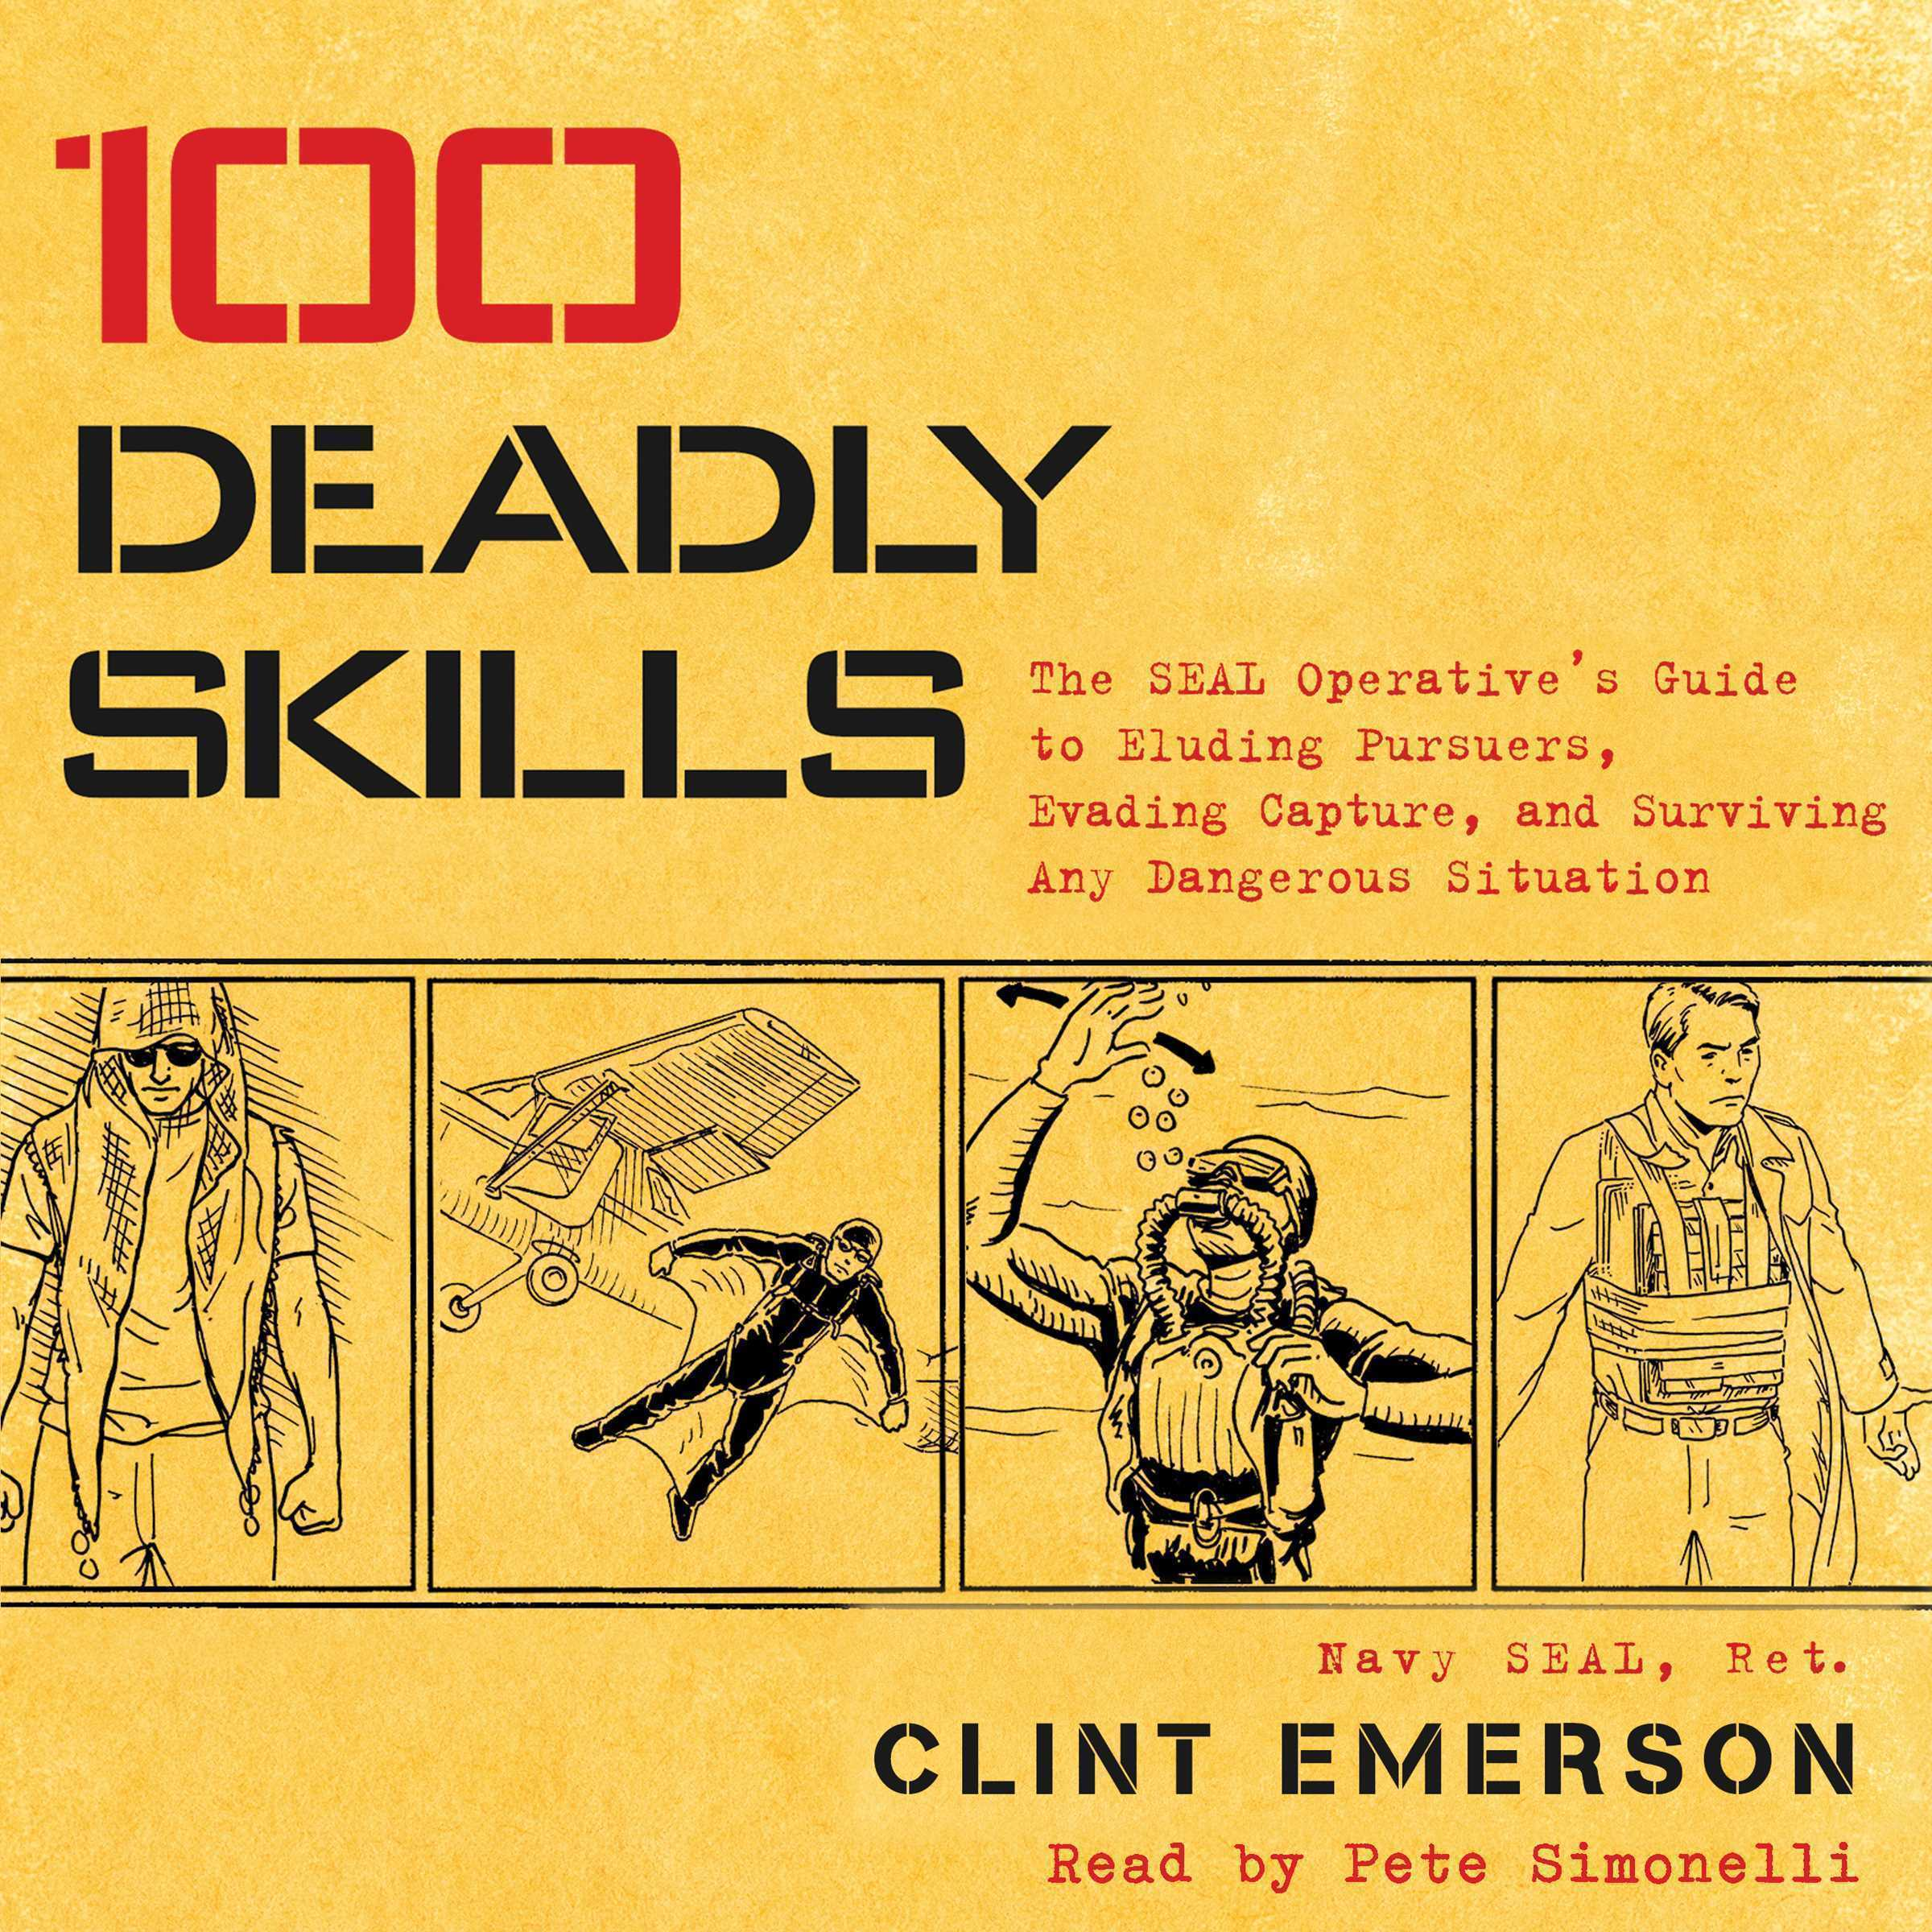 Printable 100 Deadly Skills: The SEAL Operative's Guide to Eluding Pursuers, Evading Capture, and Surviving Any Dangerous Situation Audiobook Cover Art